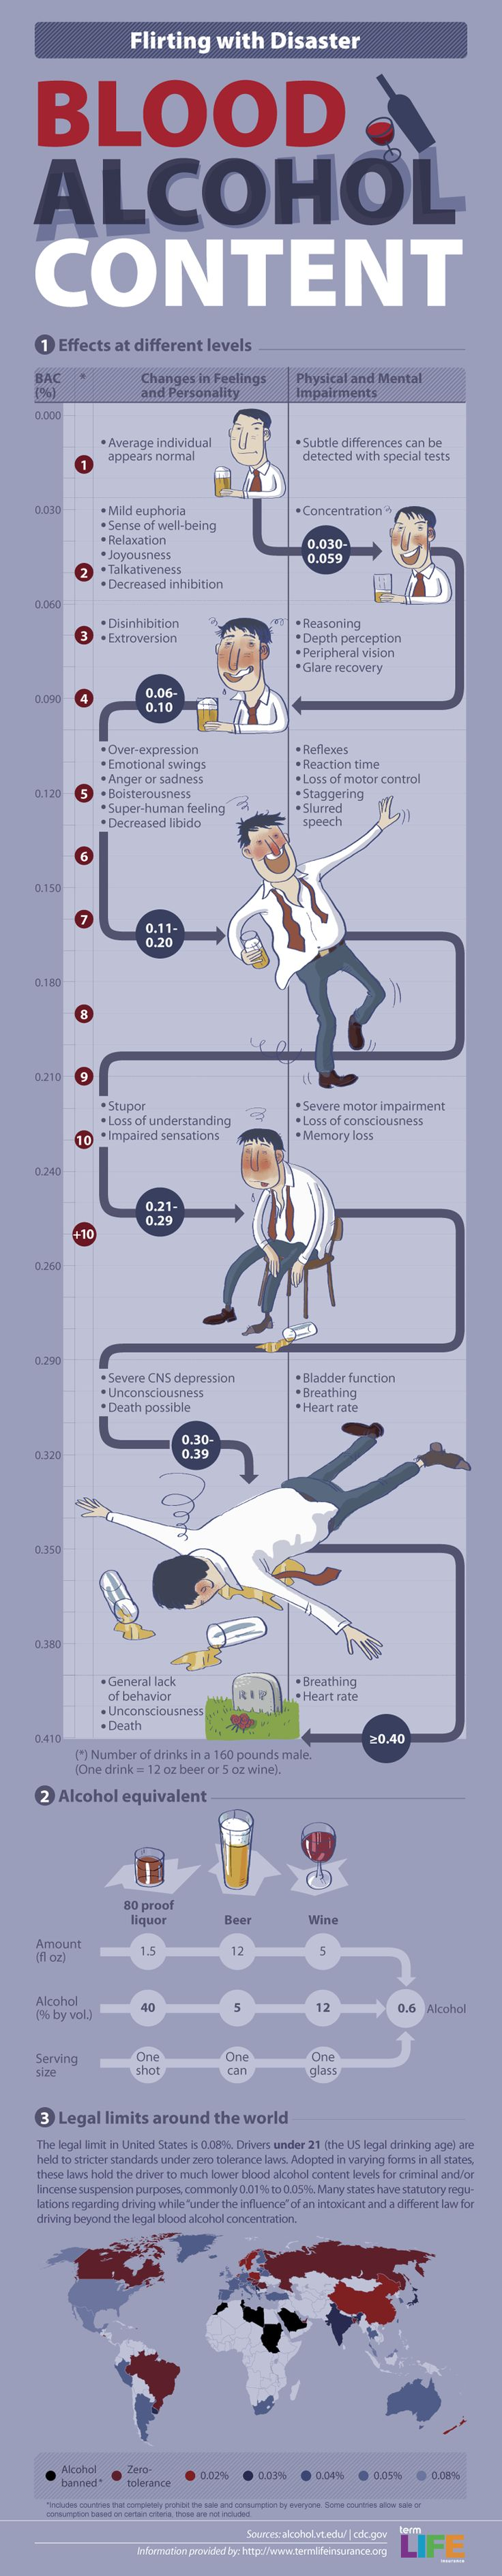 What Are the Effects of Alcohol on Sleep